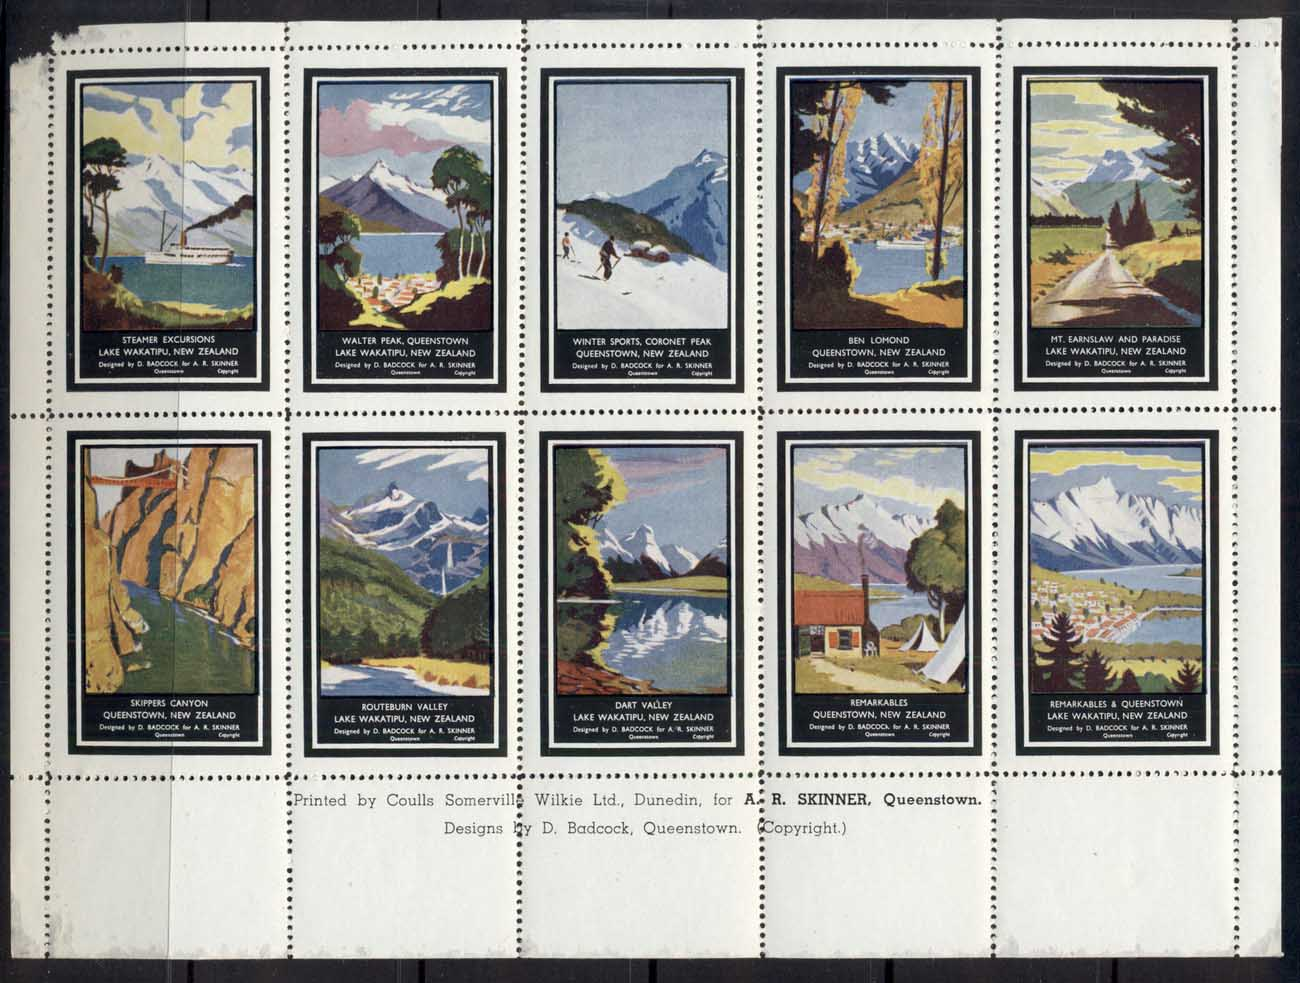 New Zealand 1950's Tourism Cinderellas sheetlet, (margin damage)